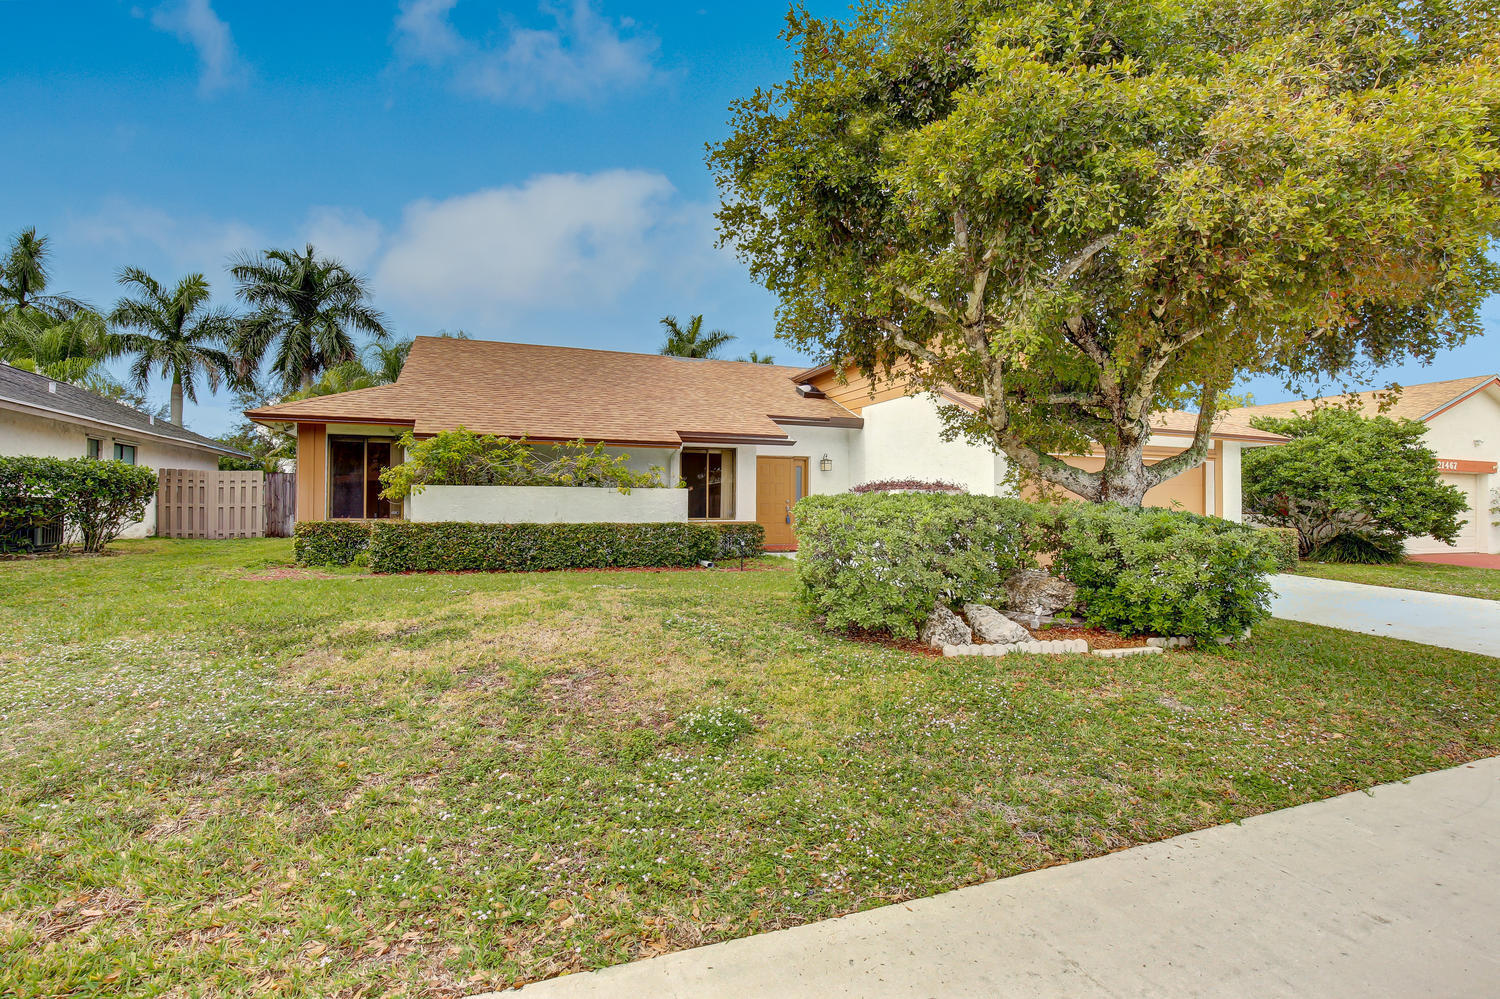 21481  Woodchuck Court  For Sale 10723735, FL